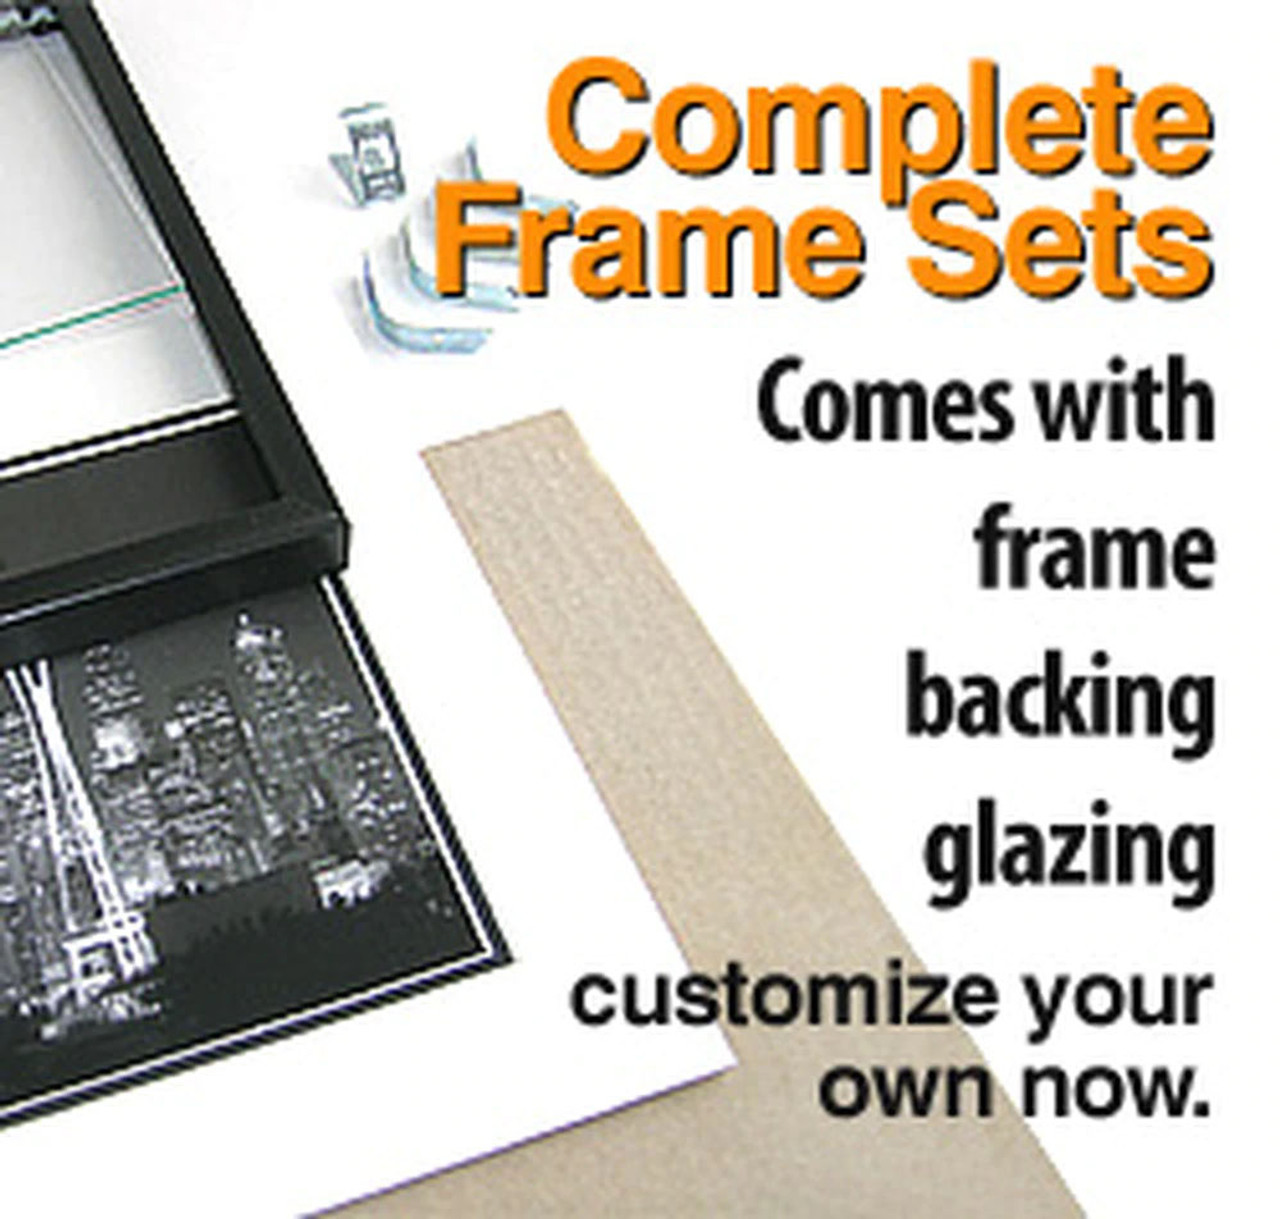 16 x 20 Backload Metal Frame Set (Complete with Standard Clear Glass and Cardboard Backing)